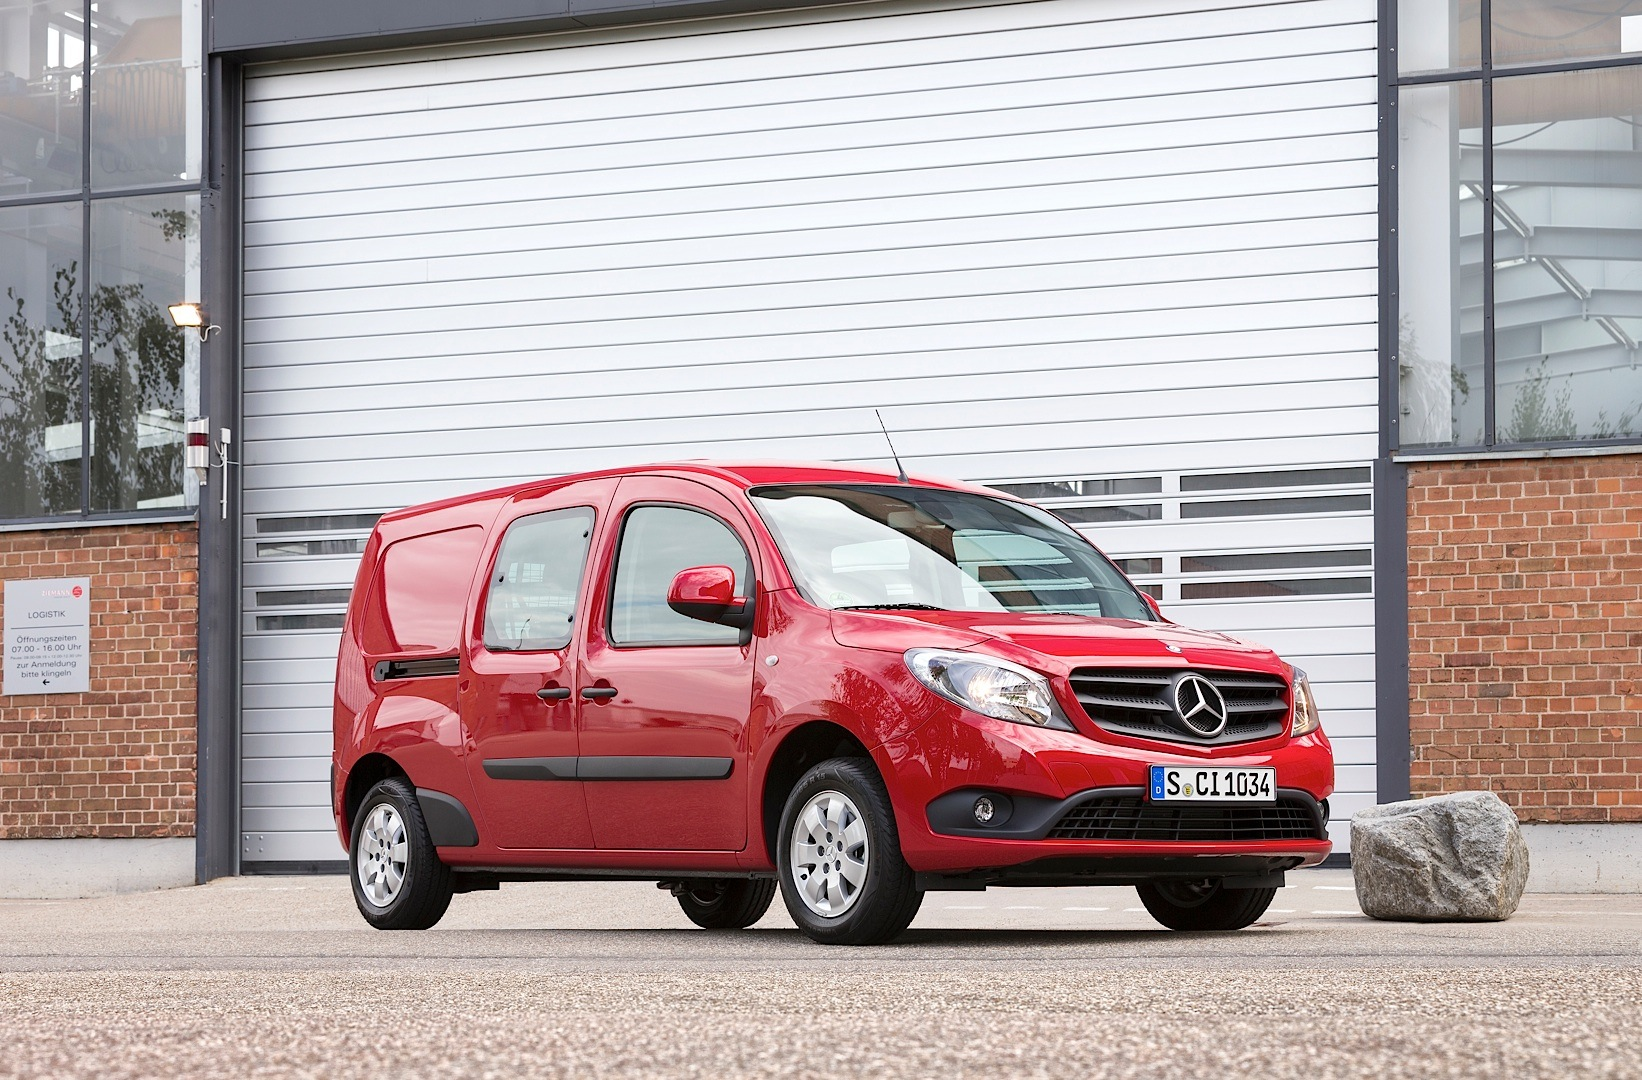 2014 mercedes citan gets new renault engines autoevolution. Black Bedroom Furniture Sets. Home Design Ideas